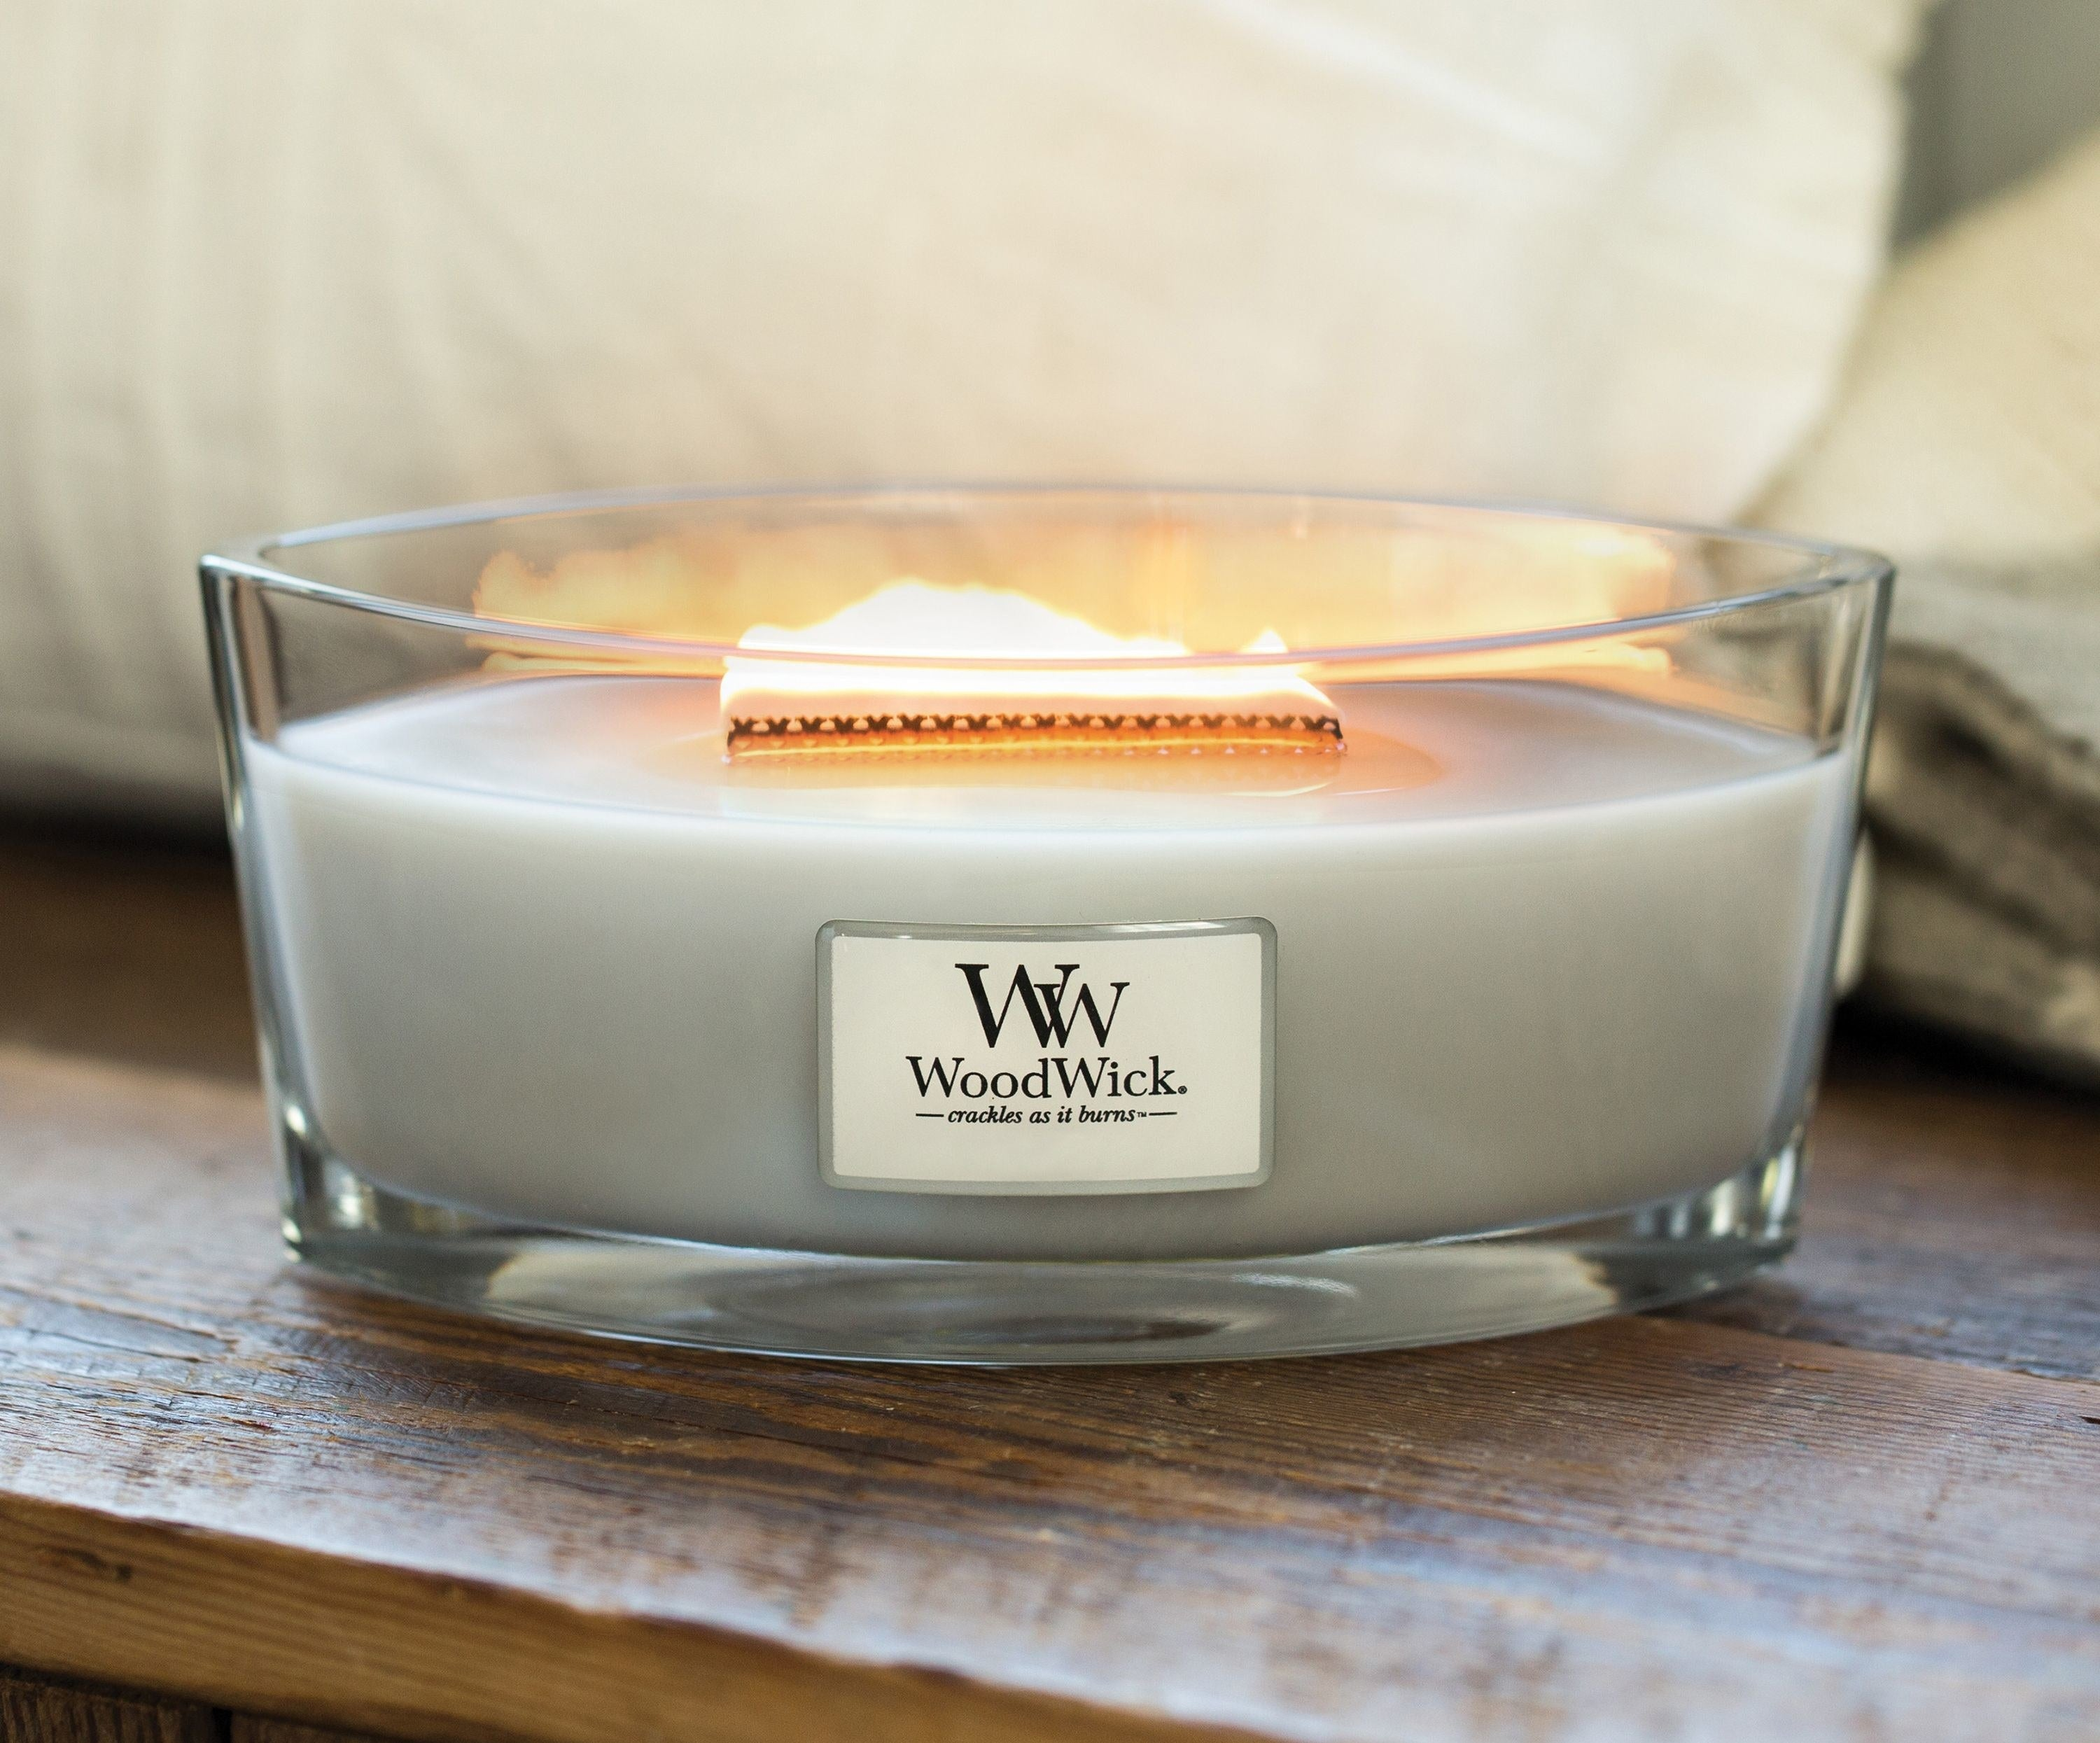 woodwick candle burning on wood counter